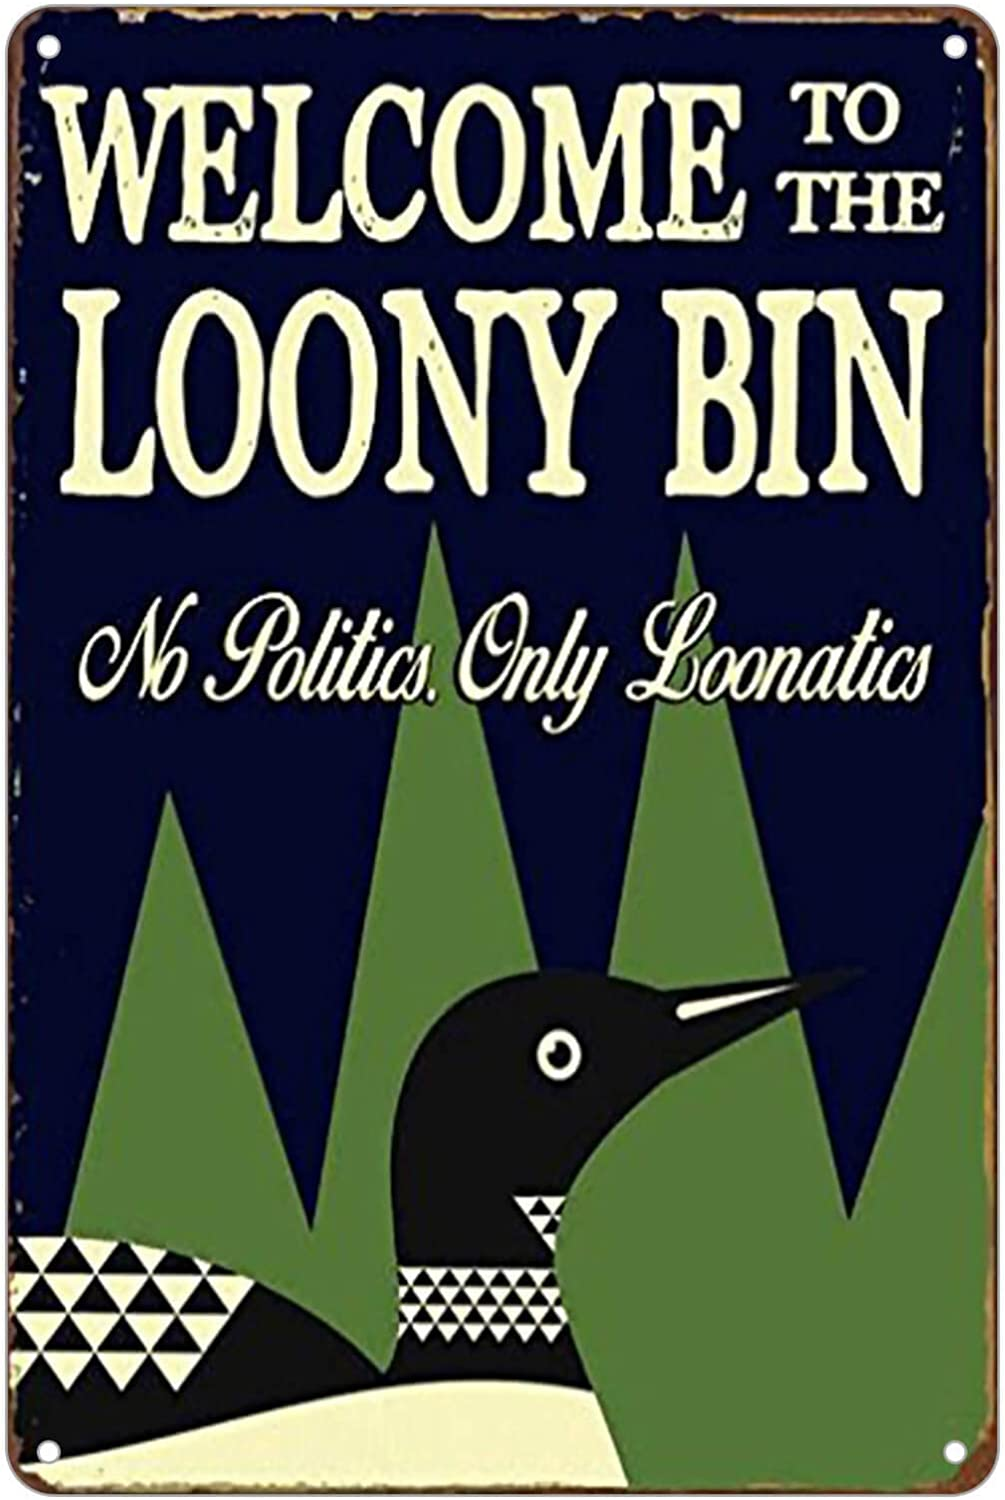 KENSILO Welcome to The Looney Bin Sign Humorous Casual Den Bar Cabin Loon Lake Farm House Wall Decor Metal Tin Signs Vintage 8 x 12 inches